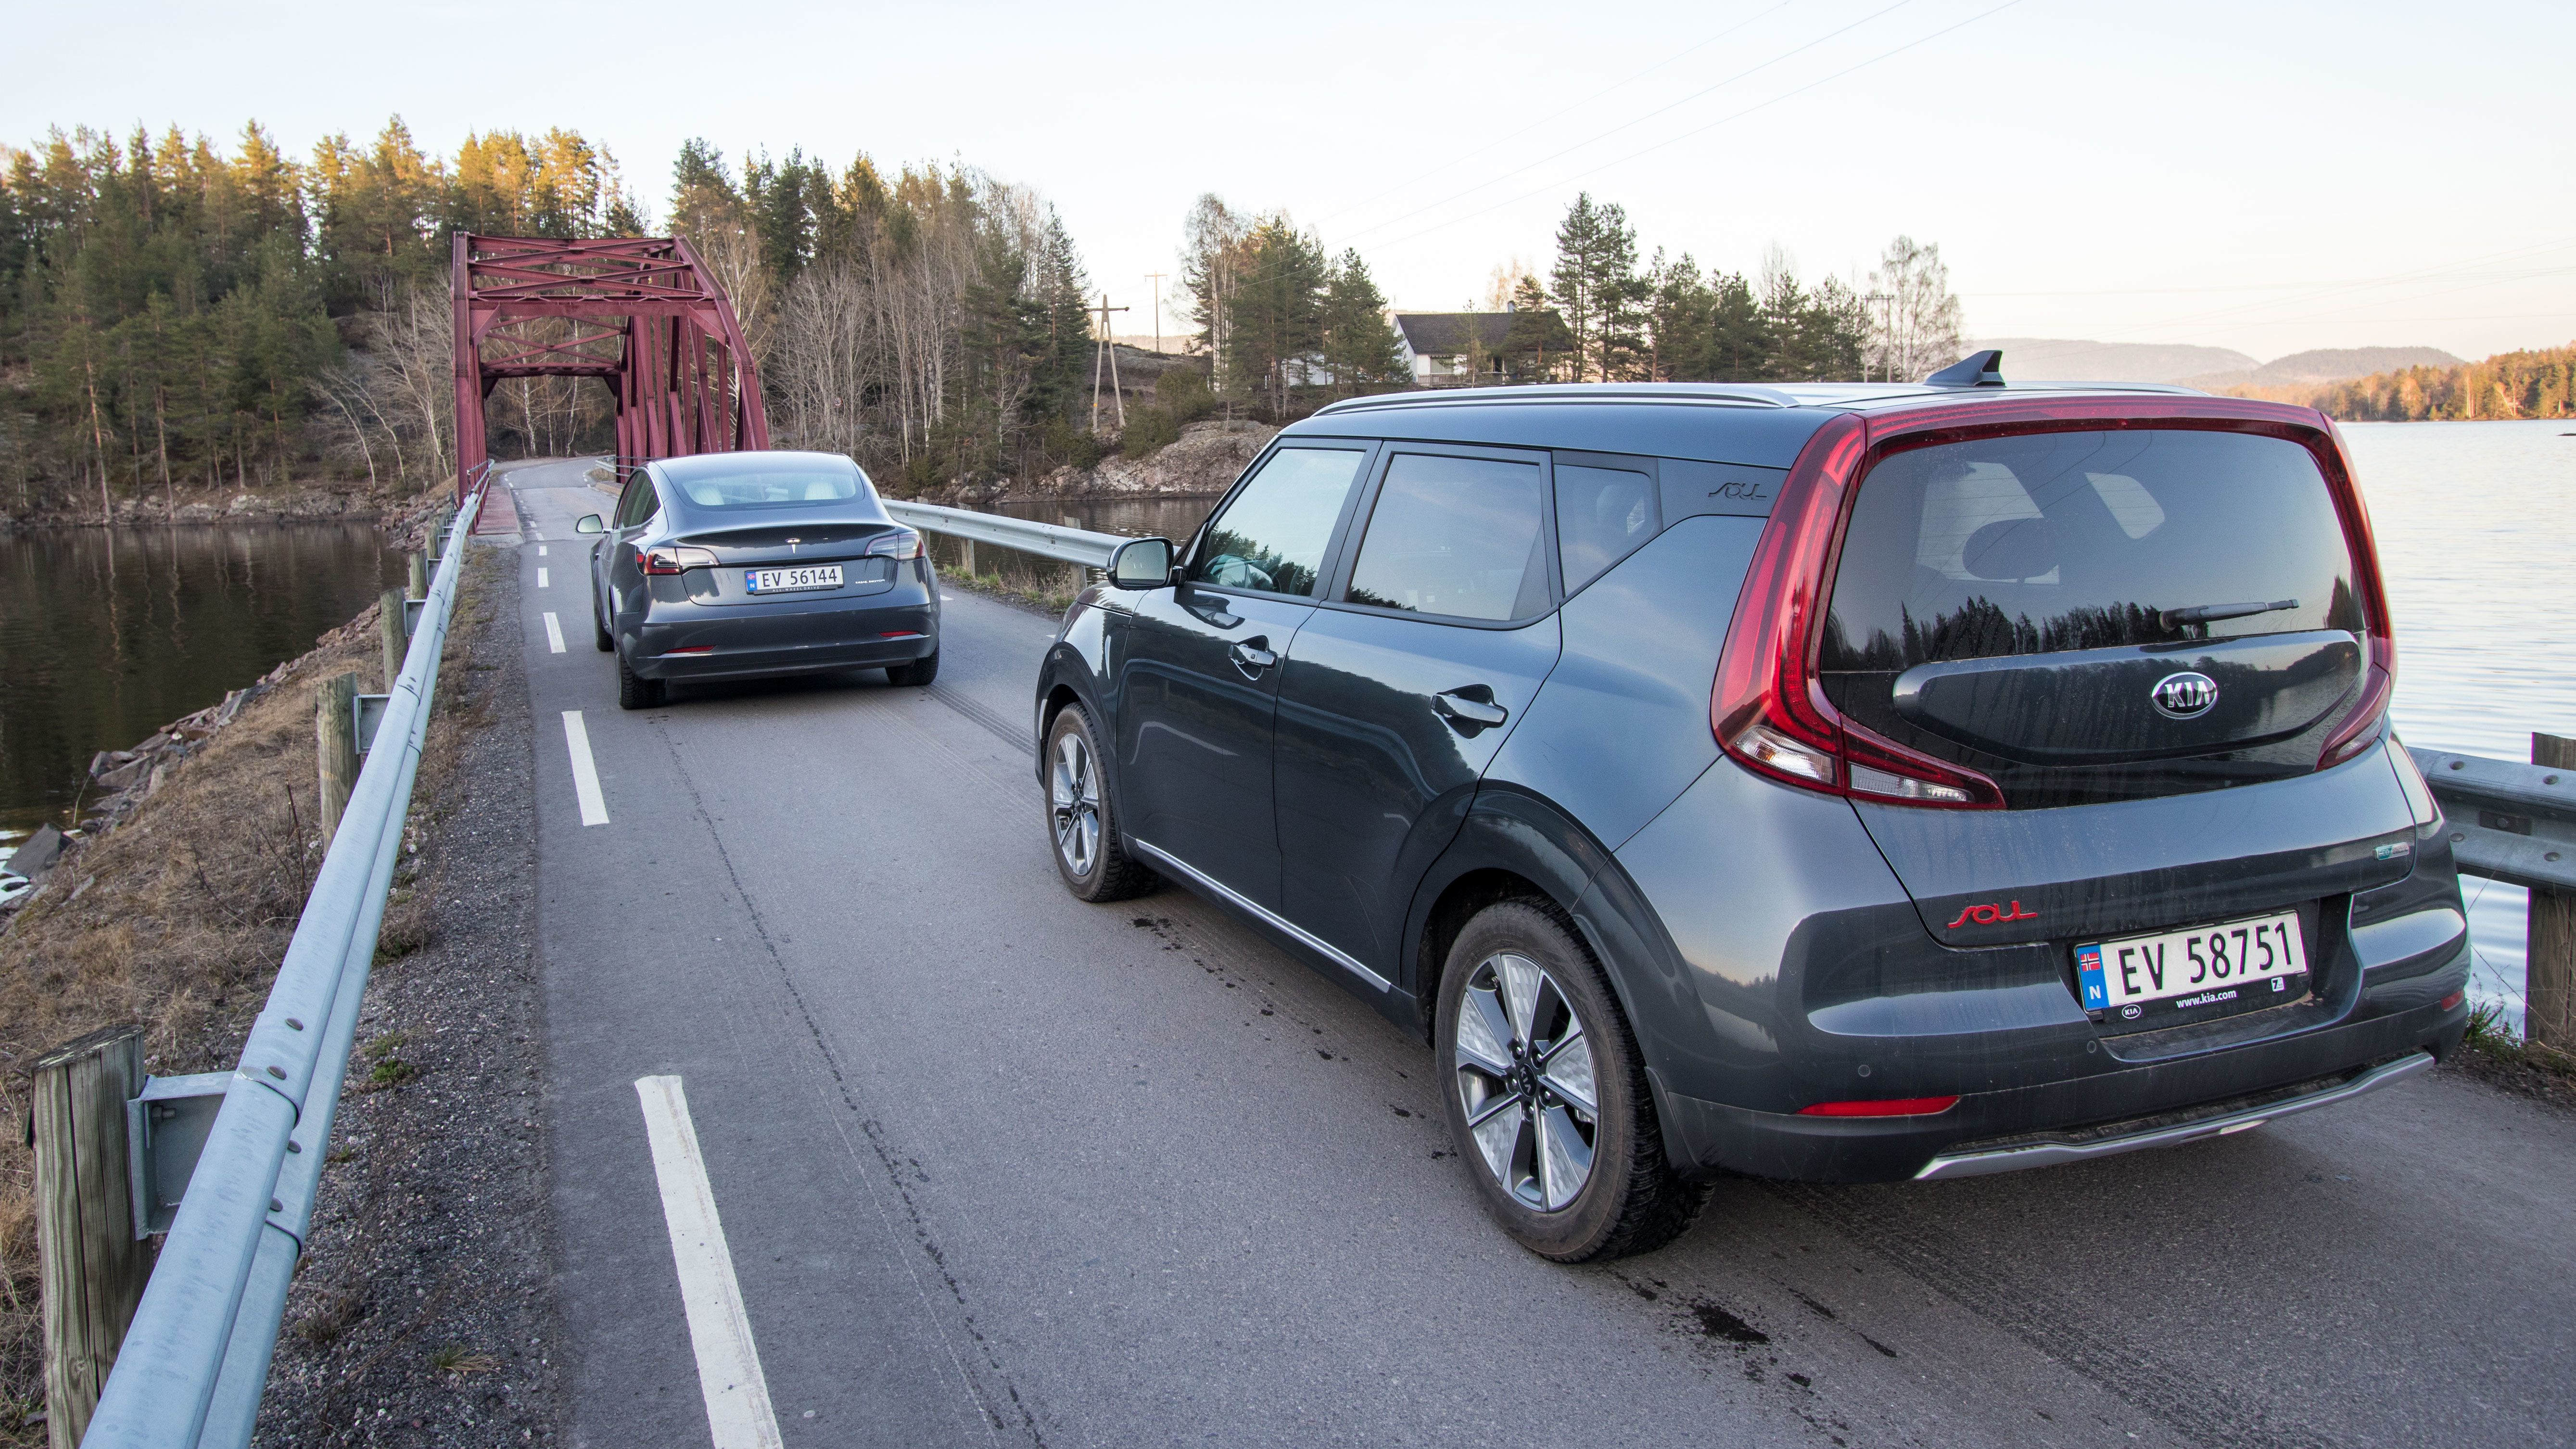 TESLA MODEL 3 V KIA E-SOUL: Two very different electric cars